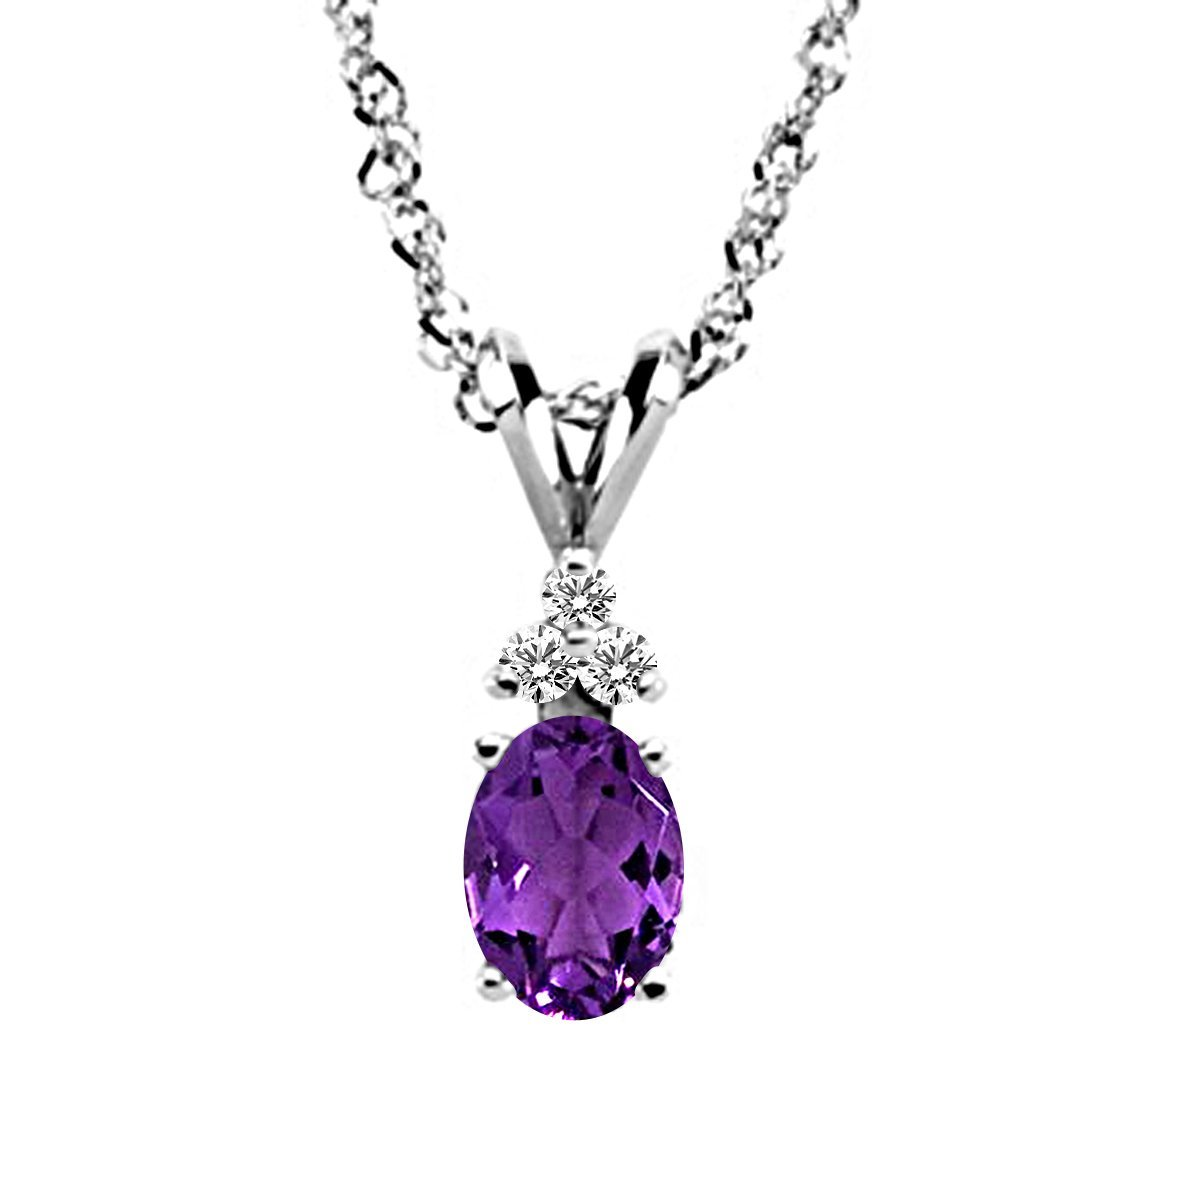 DTJEWELS Oval /& Round 0.06 Ct Amethyst /& Sim Diamond Pendant Necklace W//18 in 14K White Gold Plated